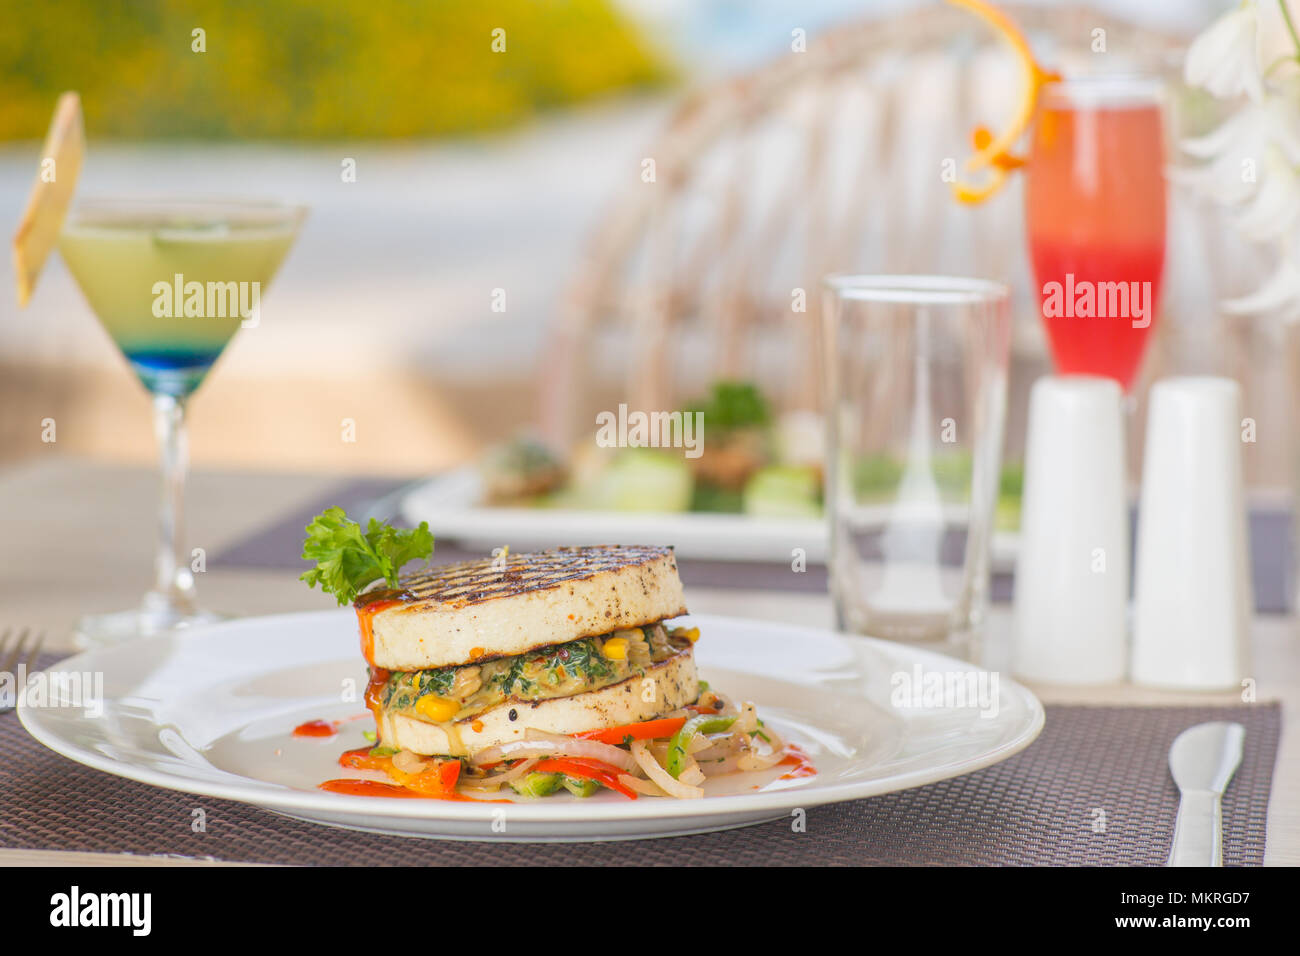 A plate of vegetarian burger at a high end outside restaurant - Stock Image